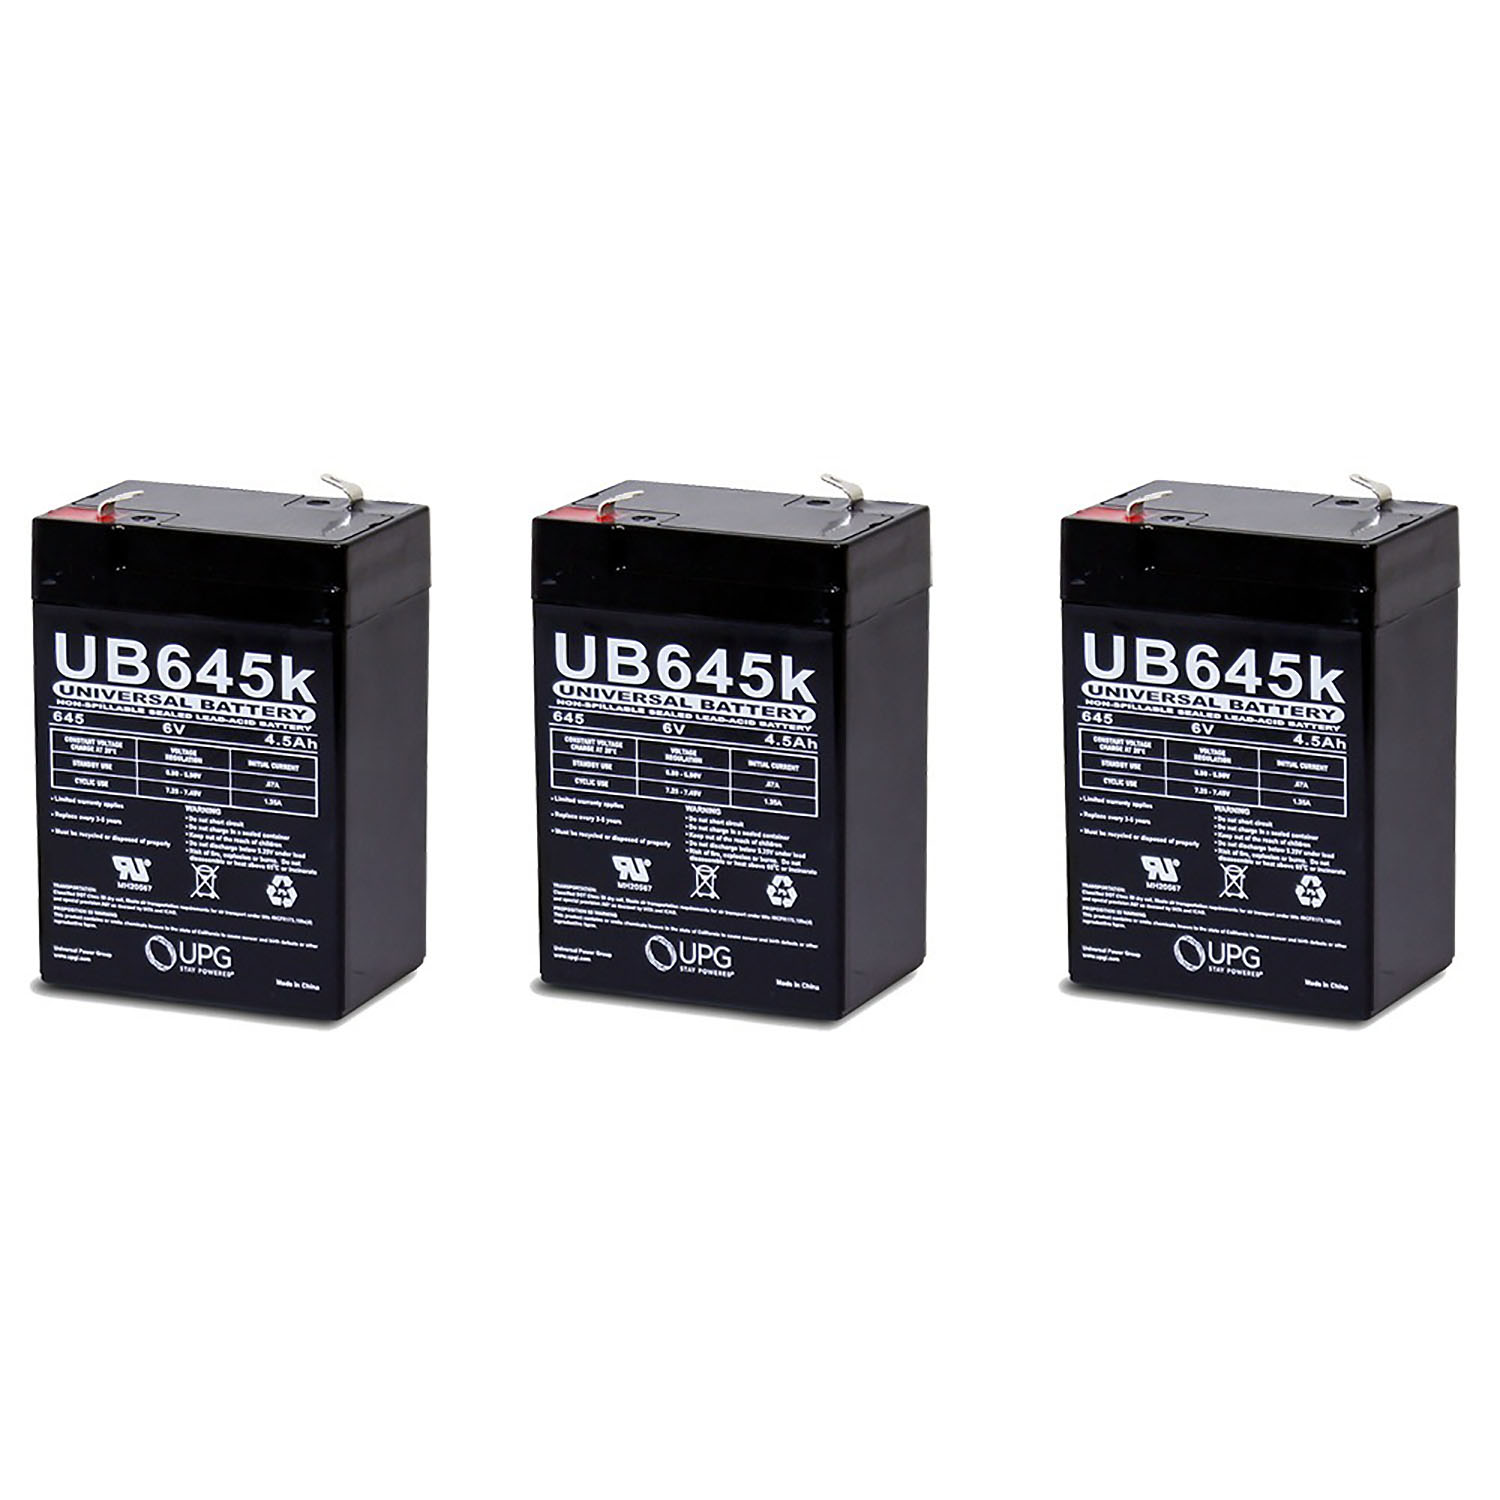 6v 4000 mAh UPS Battery for Lithonia ELB06042 - 3 Pack